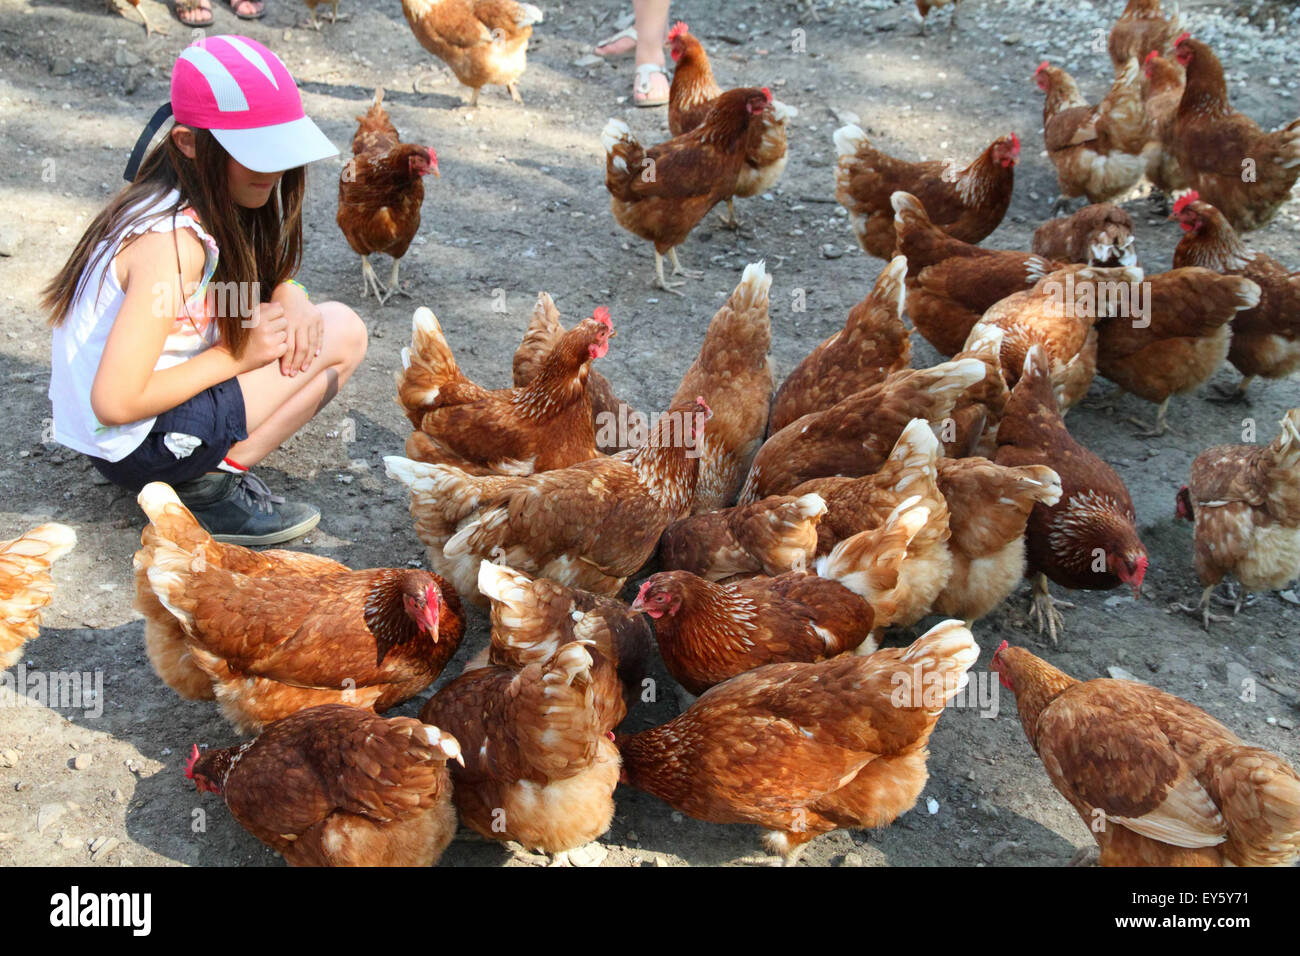 Girl and Hens Isabrown - France - Stock Image